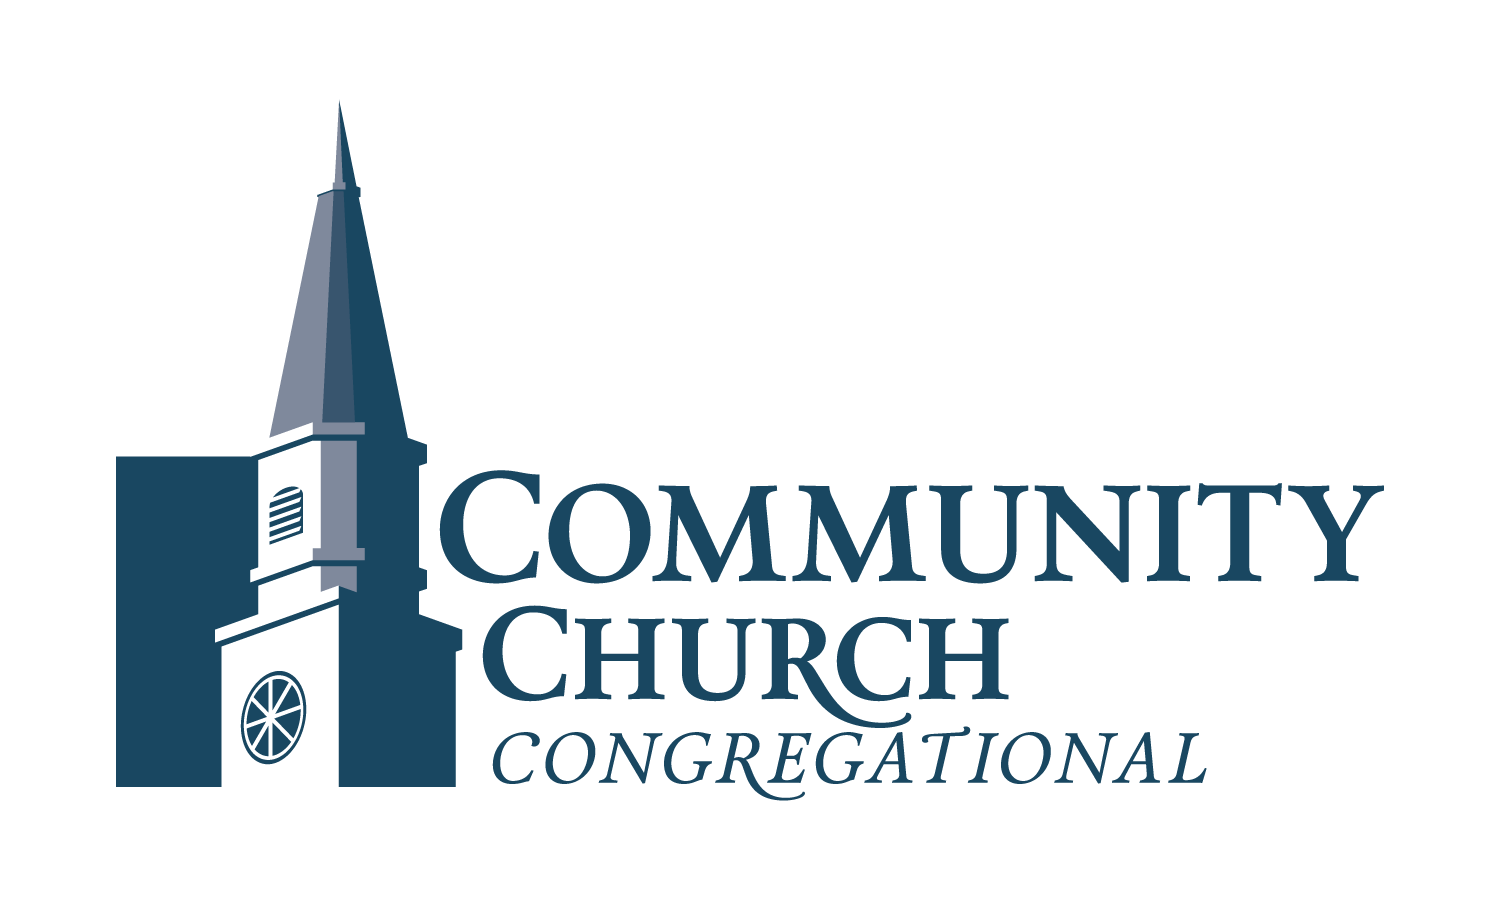 Community Church Congregational, Corona del Mar